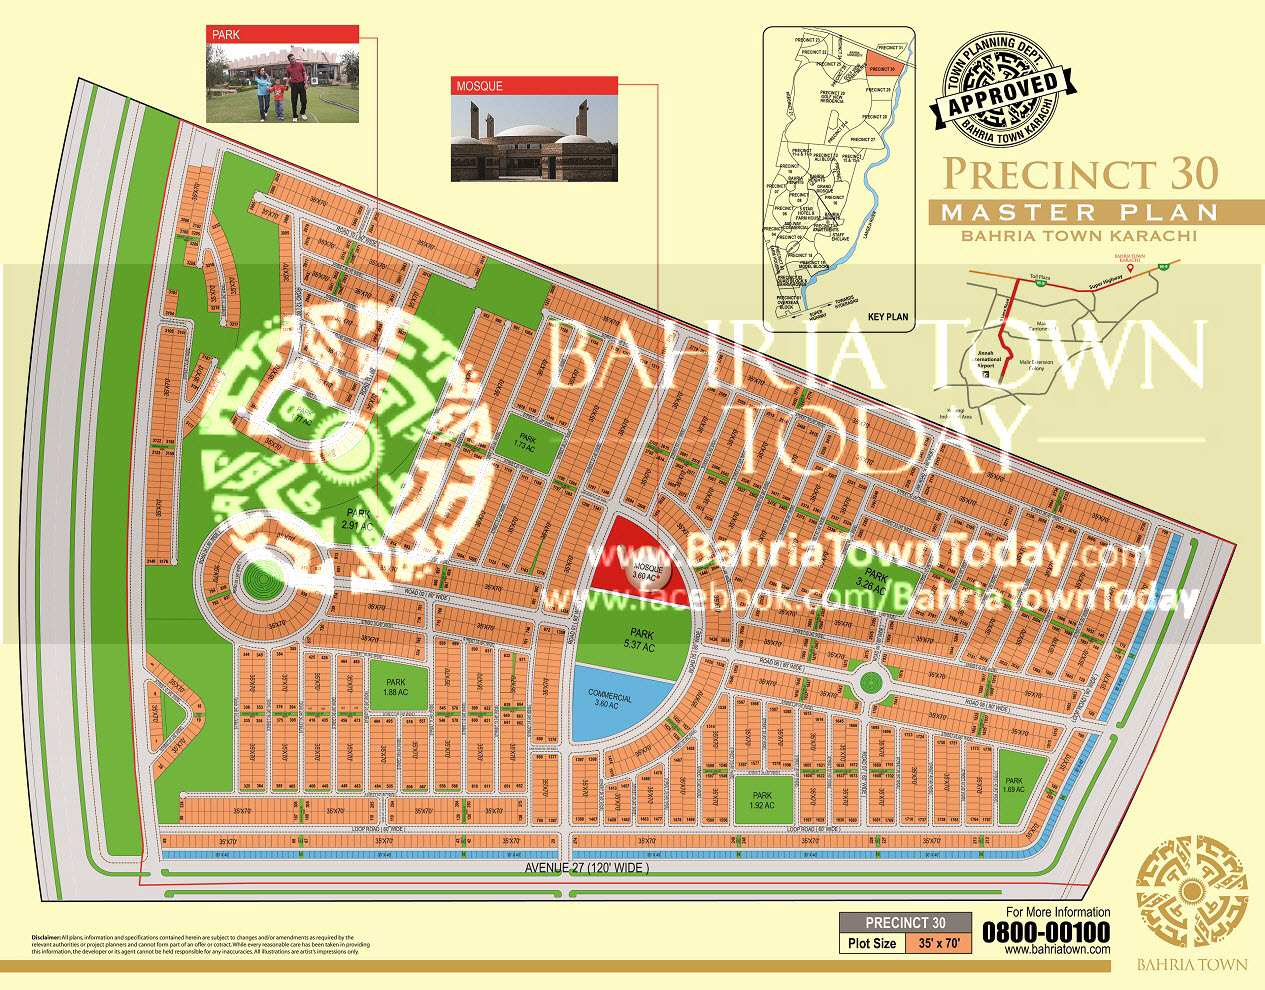 Bahria Town Karachi – Precinct 30 High Resolution Map